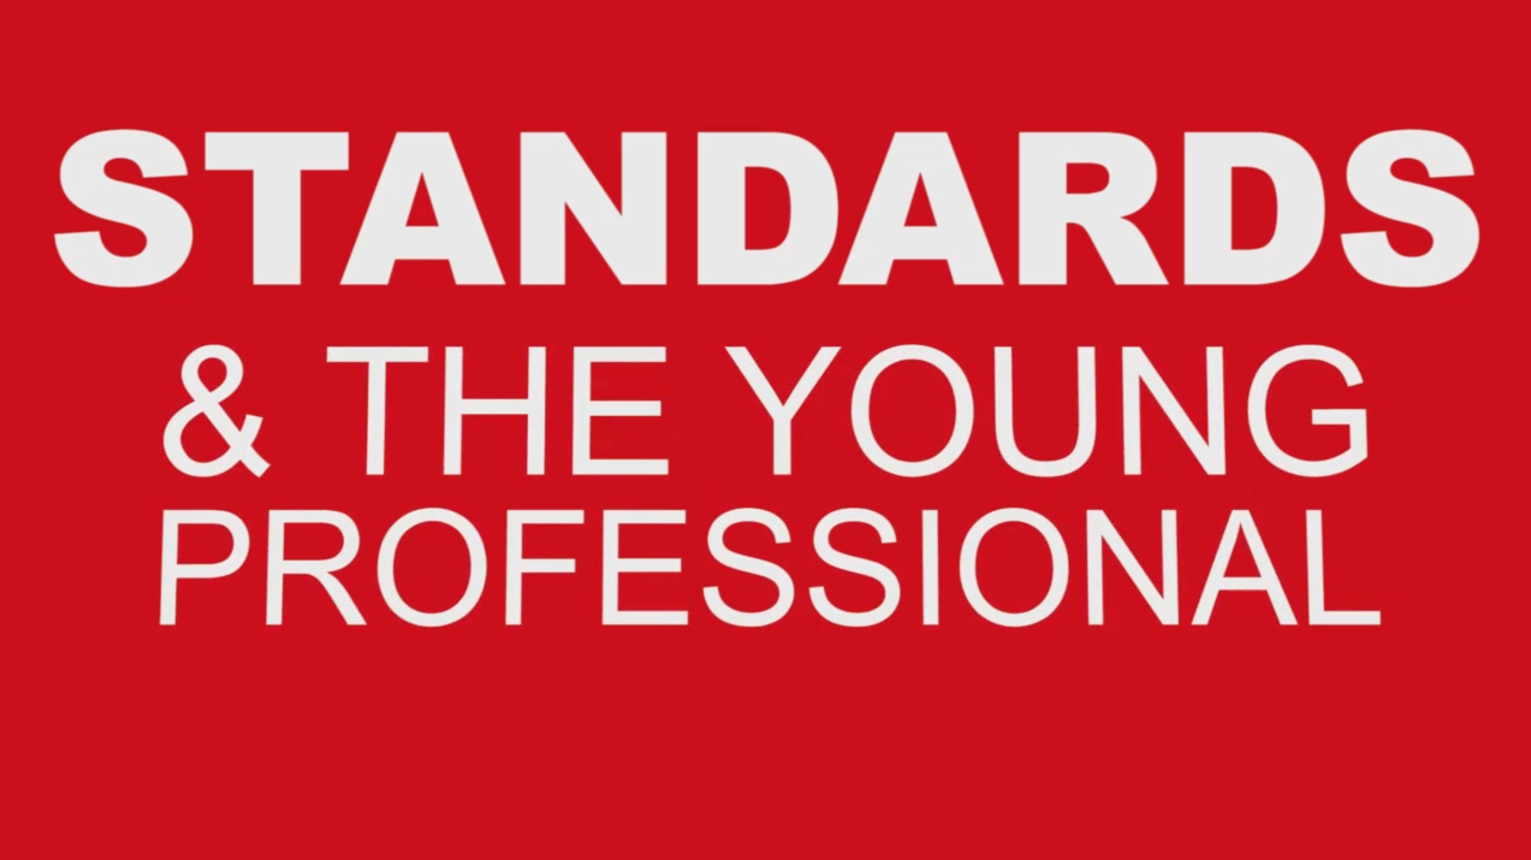 Standards and the Young Professional - from ICES 2016